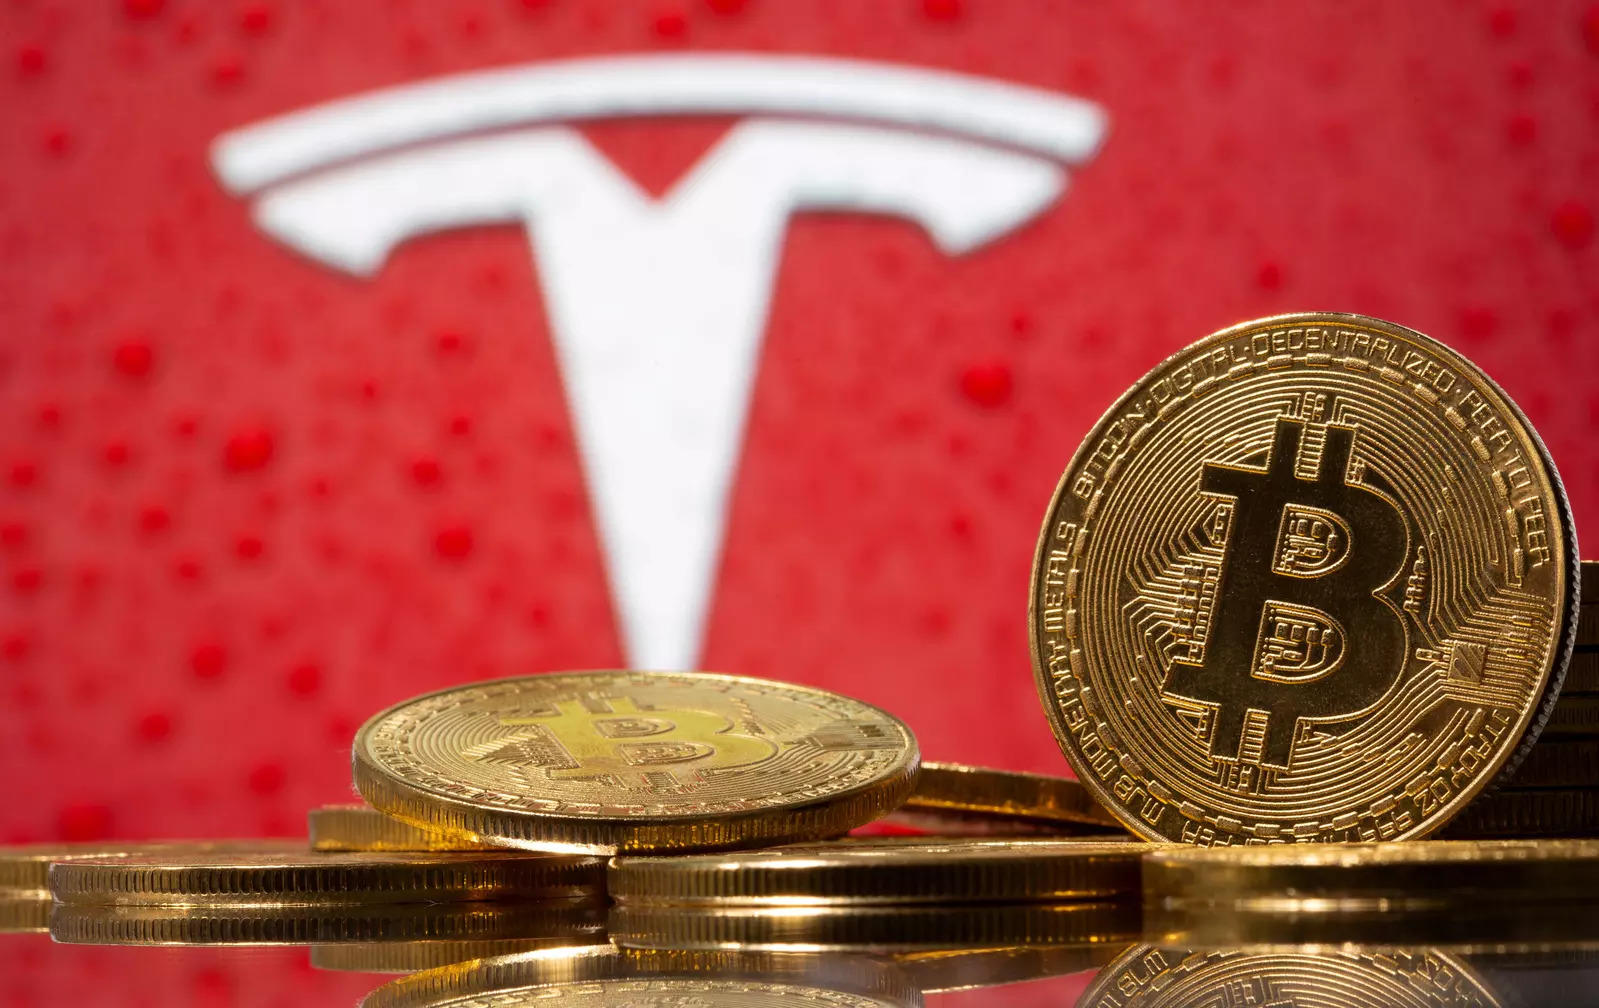 Representations of virtual currency Bitcoin are seen in front of Tesla logo in this illustration taken, February 9, 2021. REUTERS/Dado Ruvic/File Photo